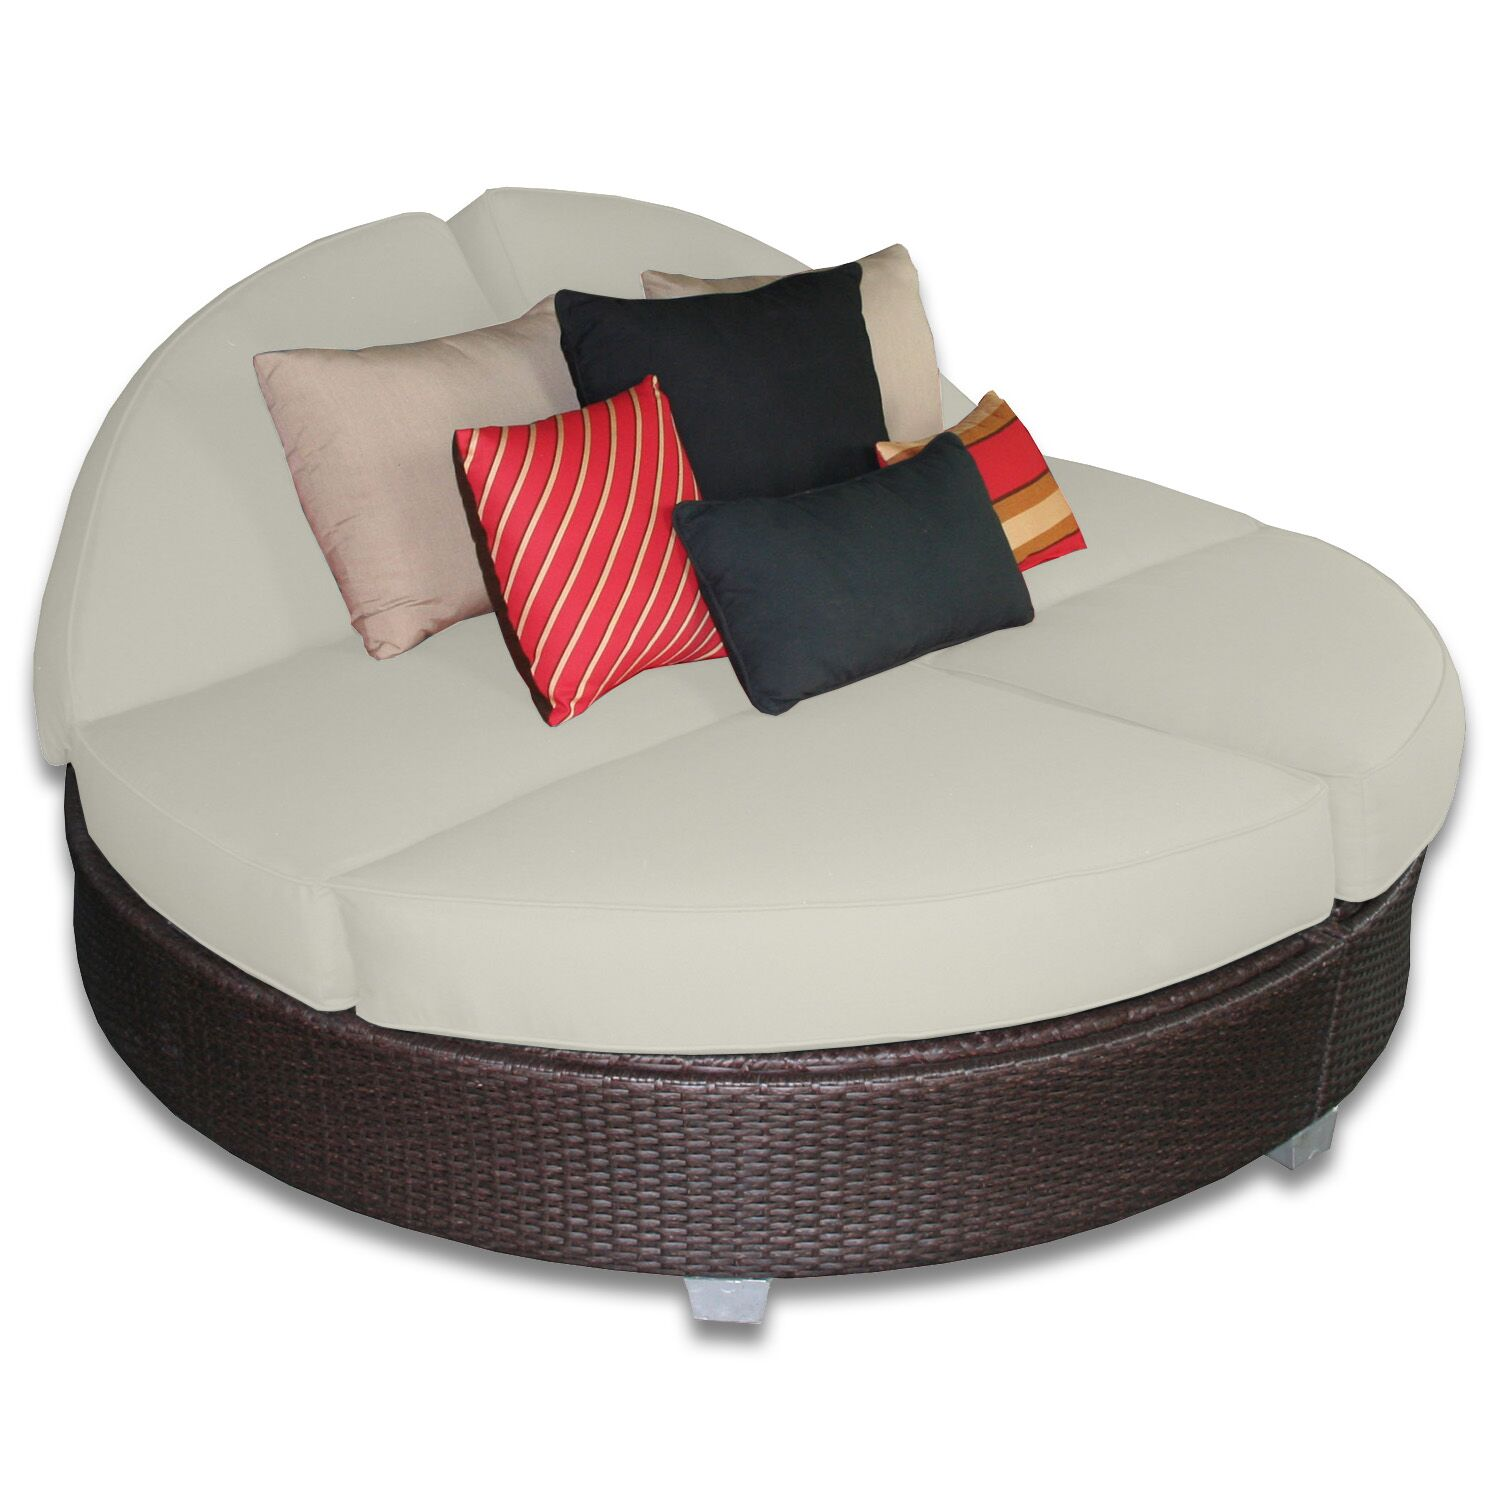 Signature Round Double Chaise Lounge Fabric Color: Eggshell